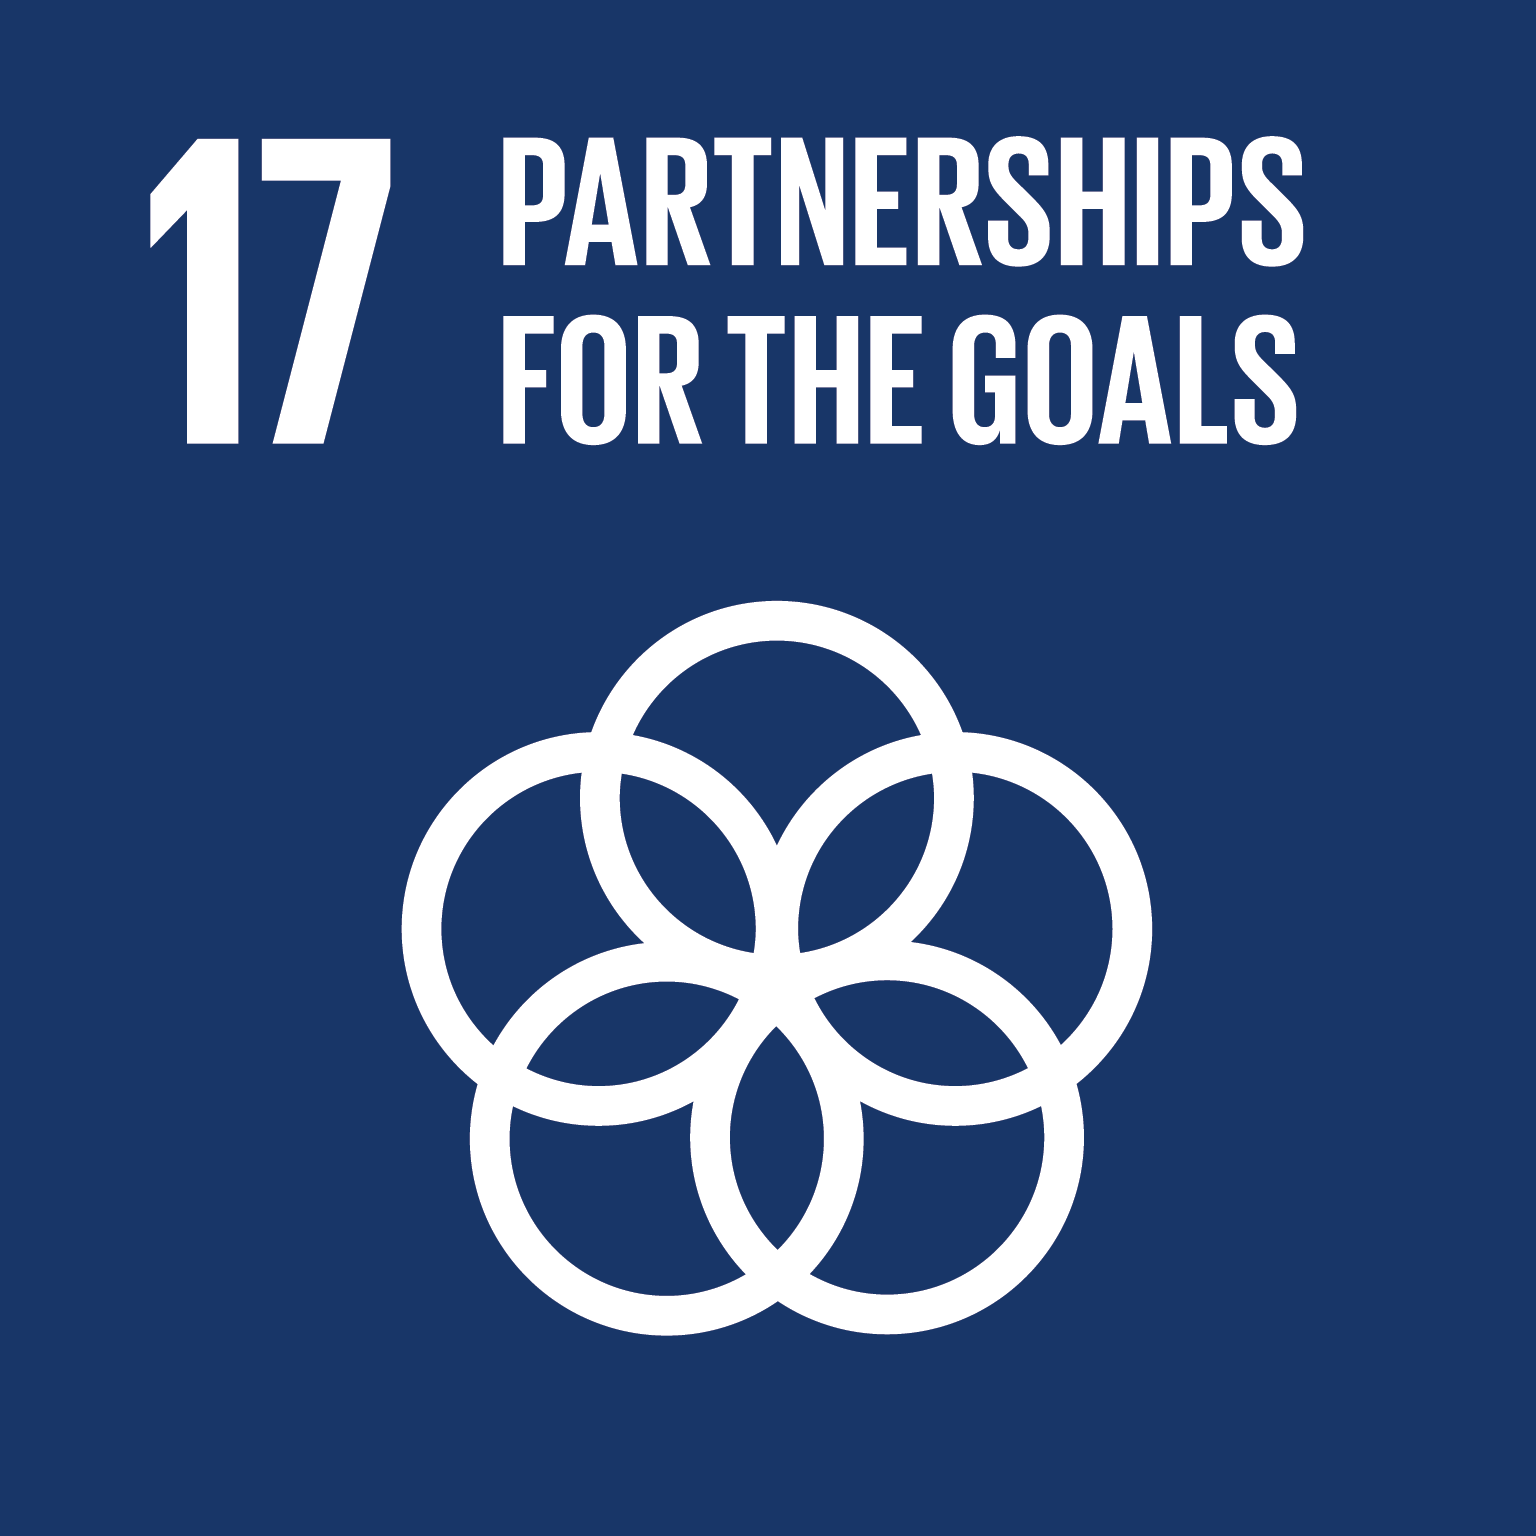 Partnerships For the Goals - Revitalize the global partnership for sustainable development